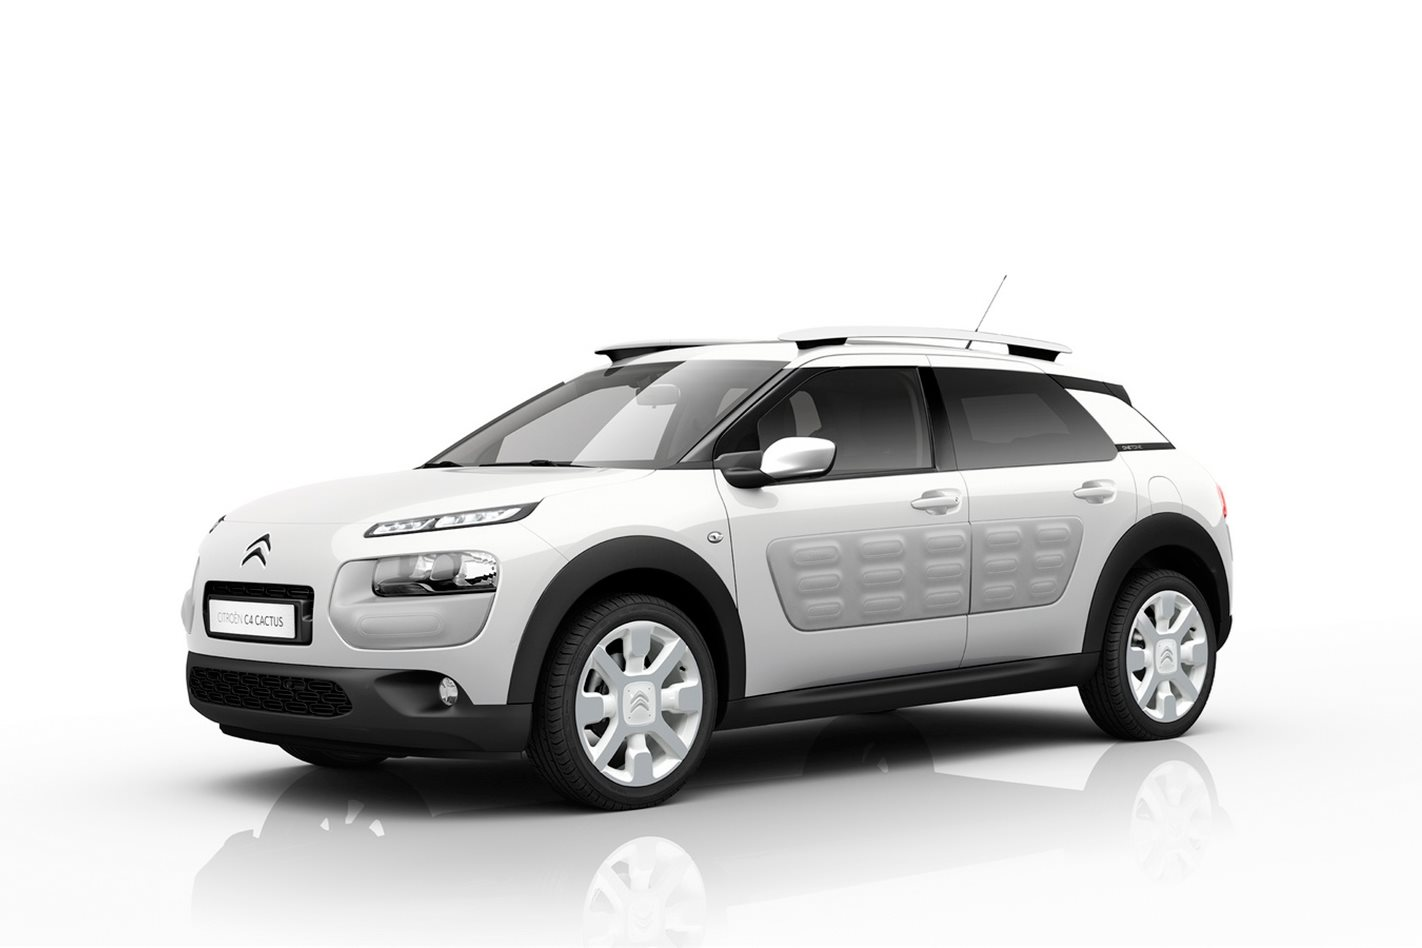 2018 citroen c4 cactus petrol auto and onetone edition for Garage citroen c4